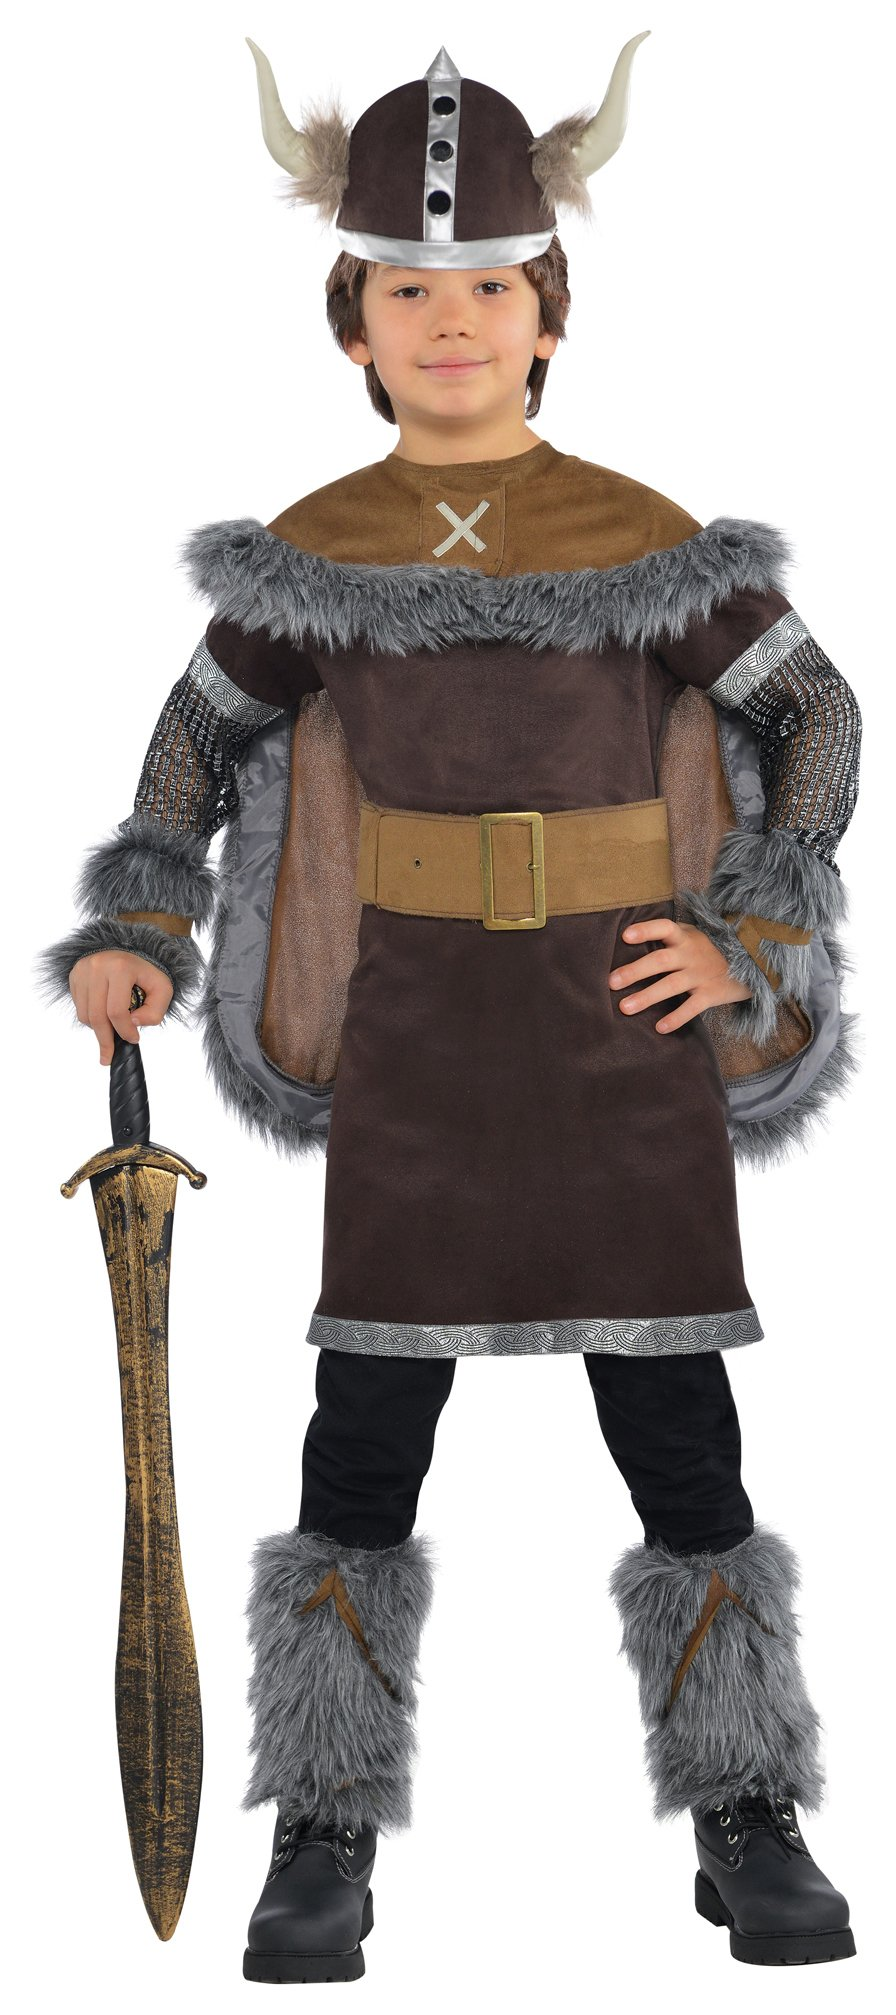 Image of Amscan Deluxe Viking Warrior Costume - 4 - 6 Years.